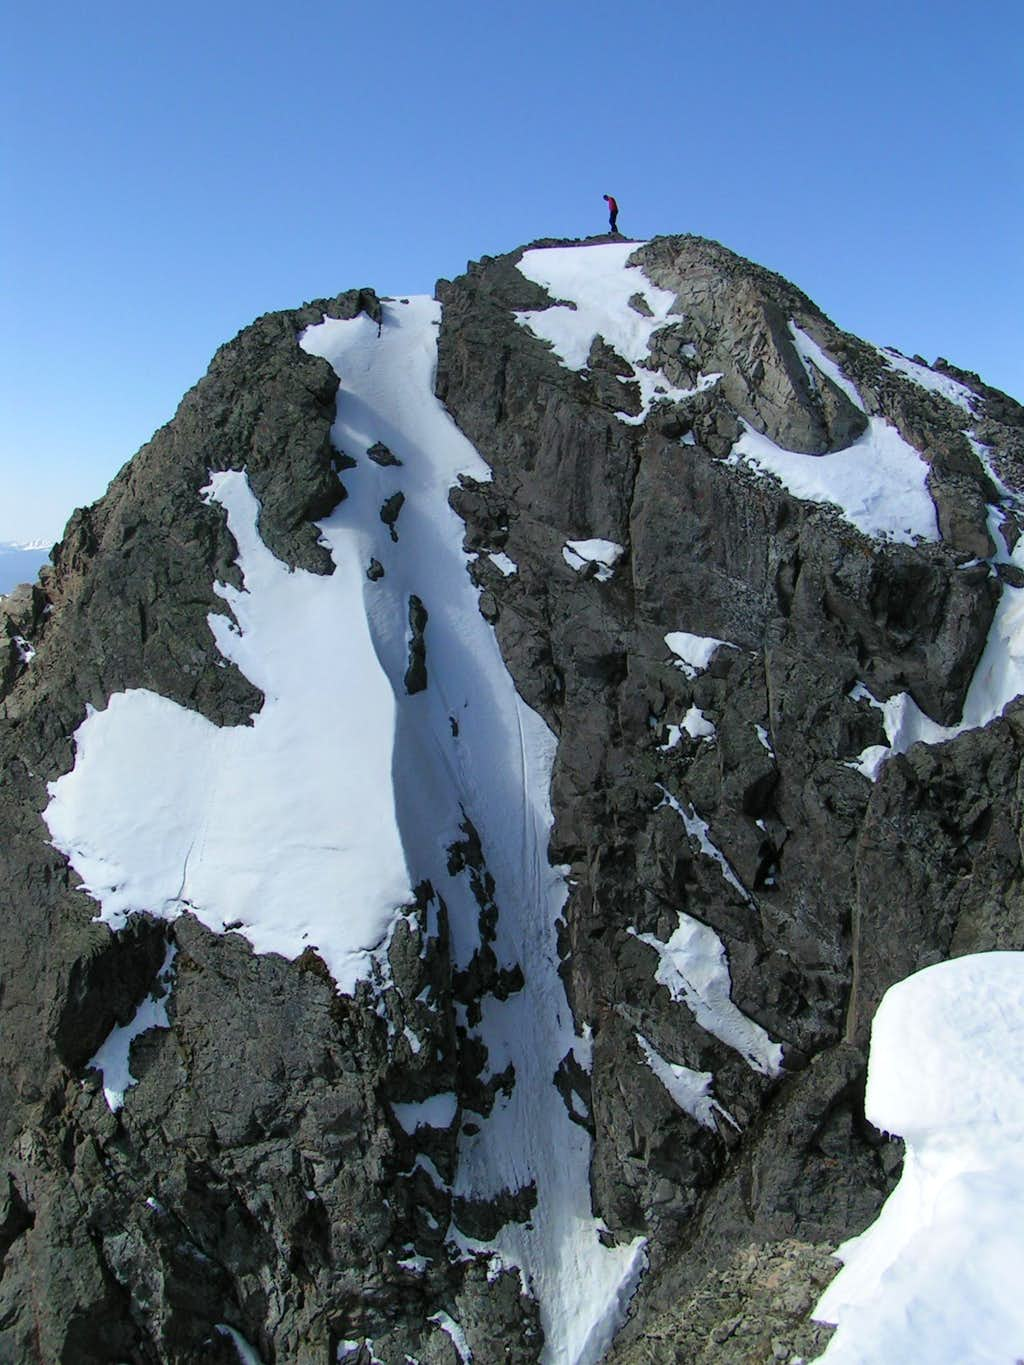 Lone climber looks out over Grizzly Peak 13,988'